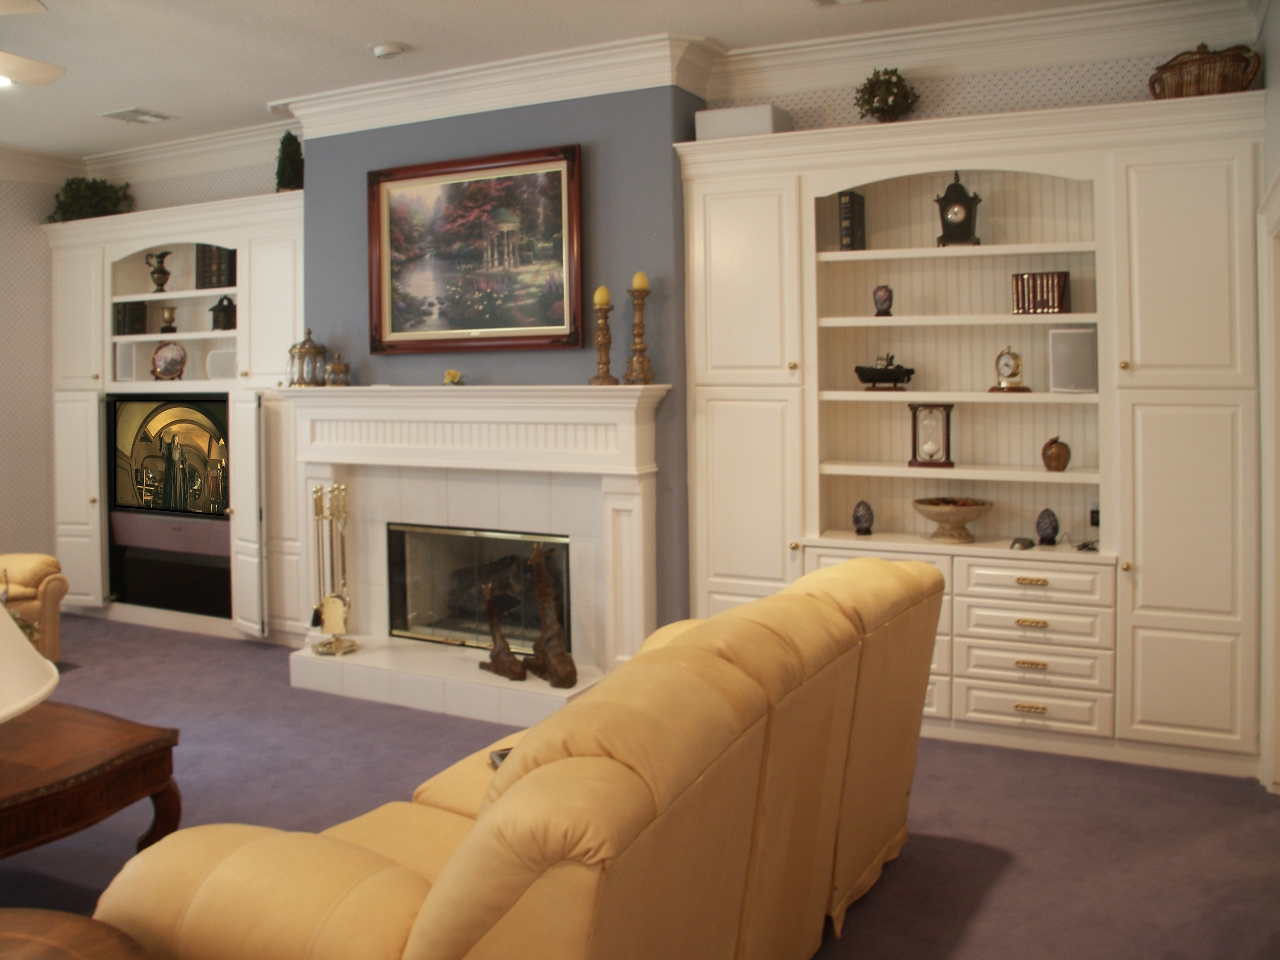 built ins custom cabinets houston custom furniture rh farriscabinets com Built in Wall Cabinet Designs Custom Made Cabinets